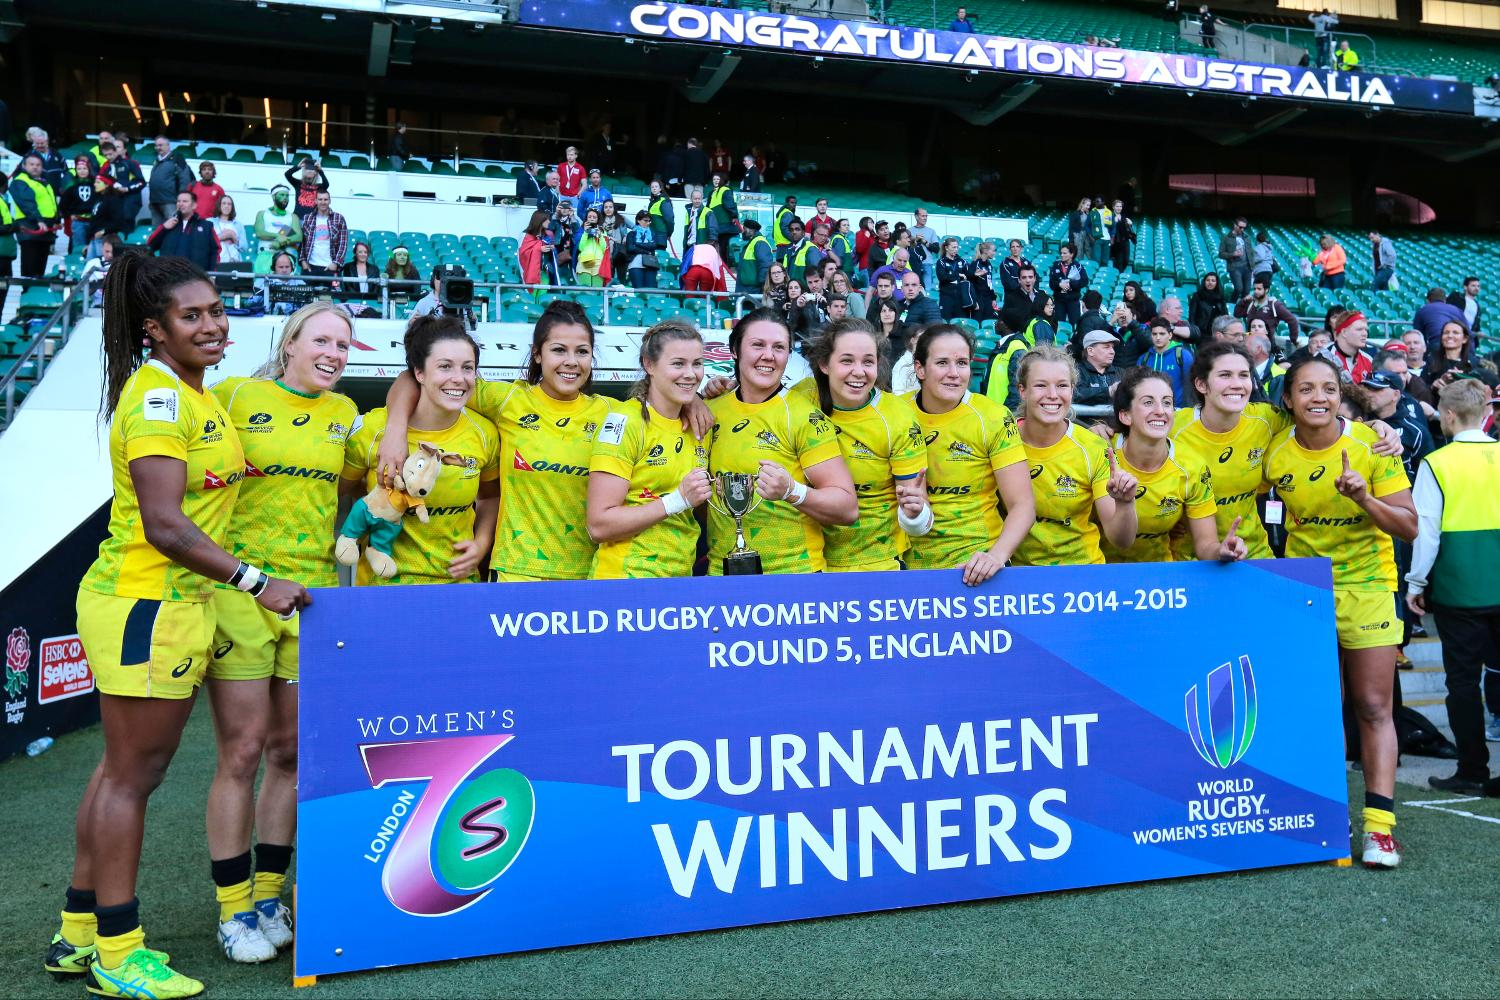 Australia - London 7s winners